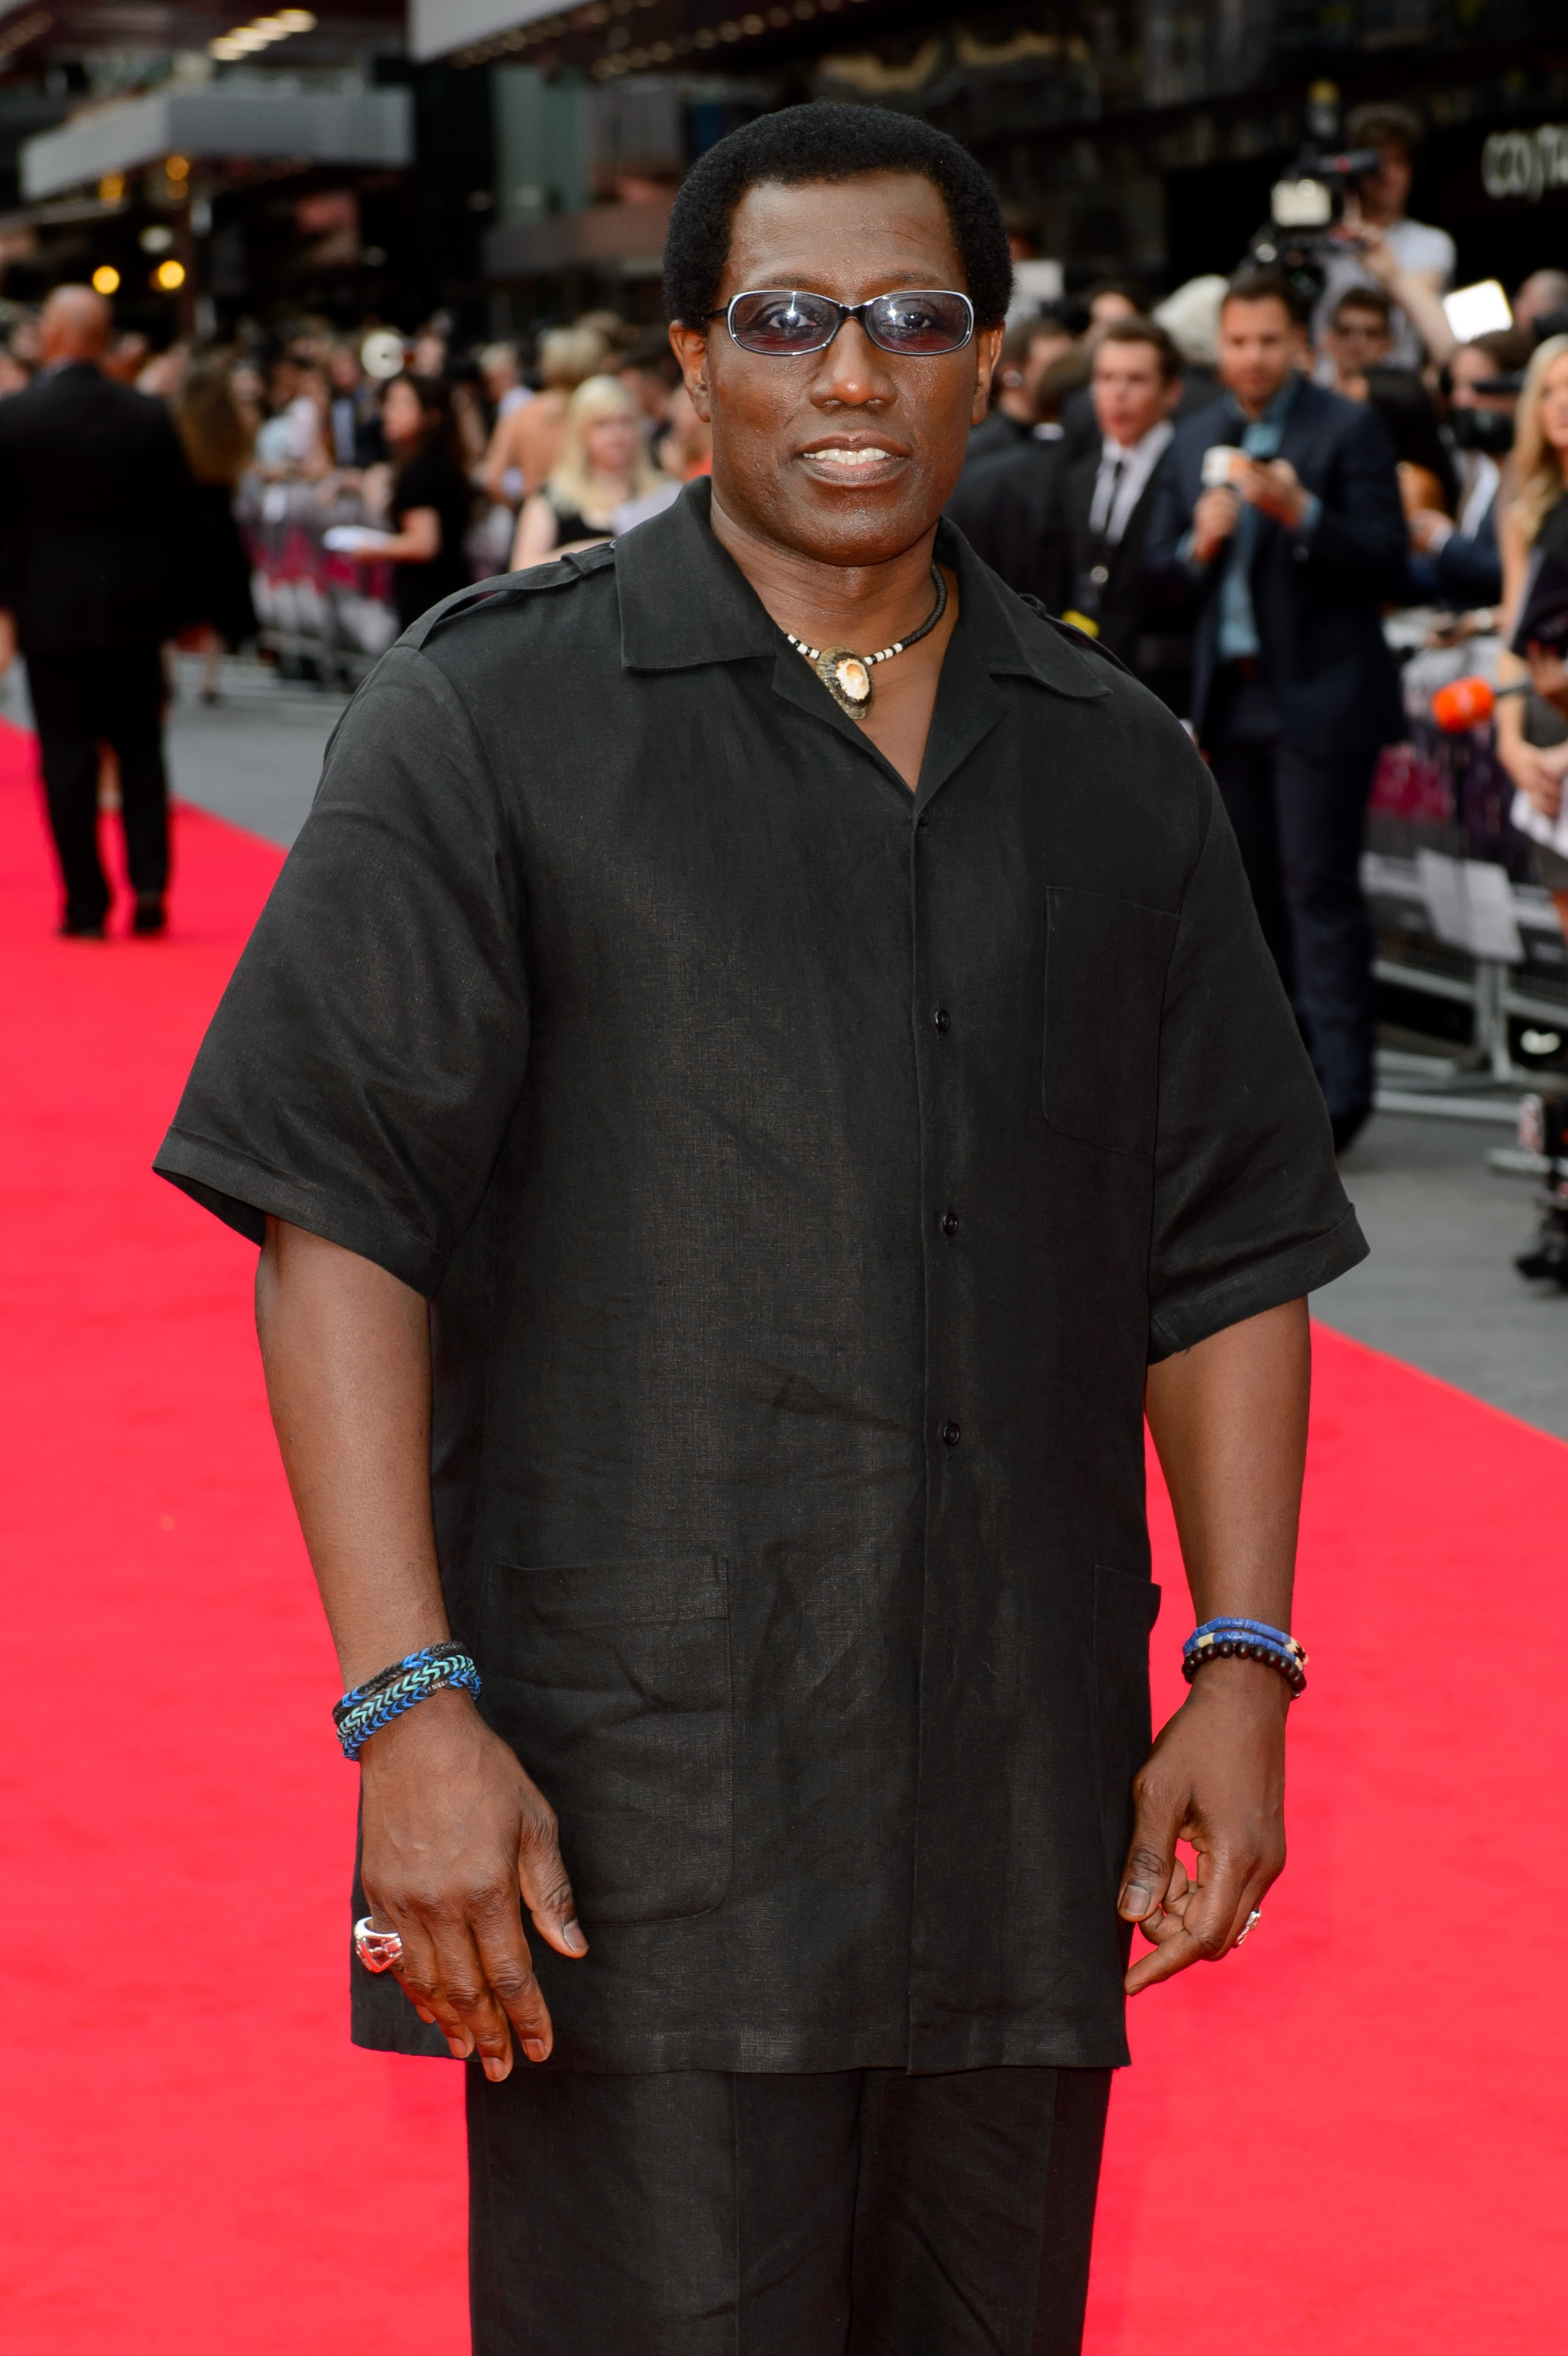 """Actor Wesley Snipes arrives for the world premiere of """"The Expendables 3"""" in London on Monday."""